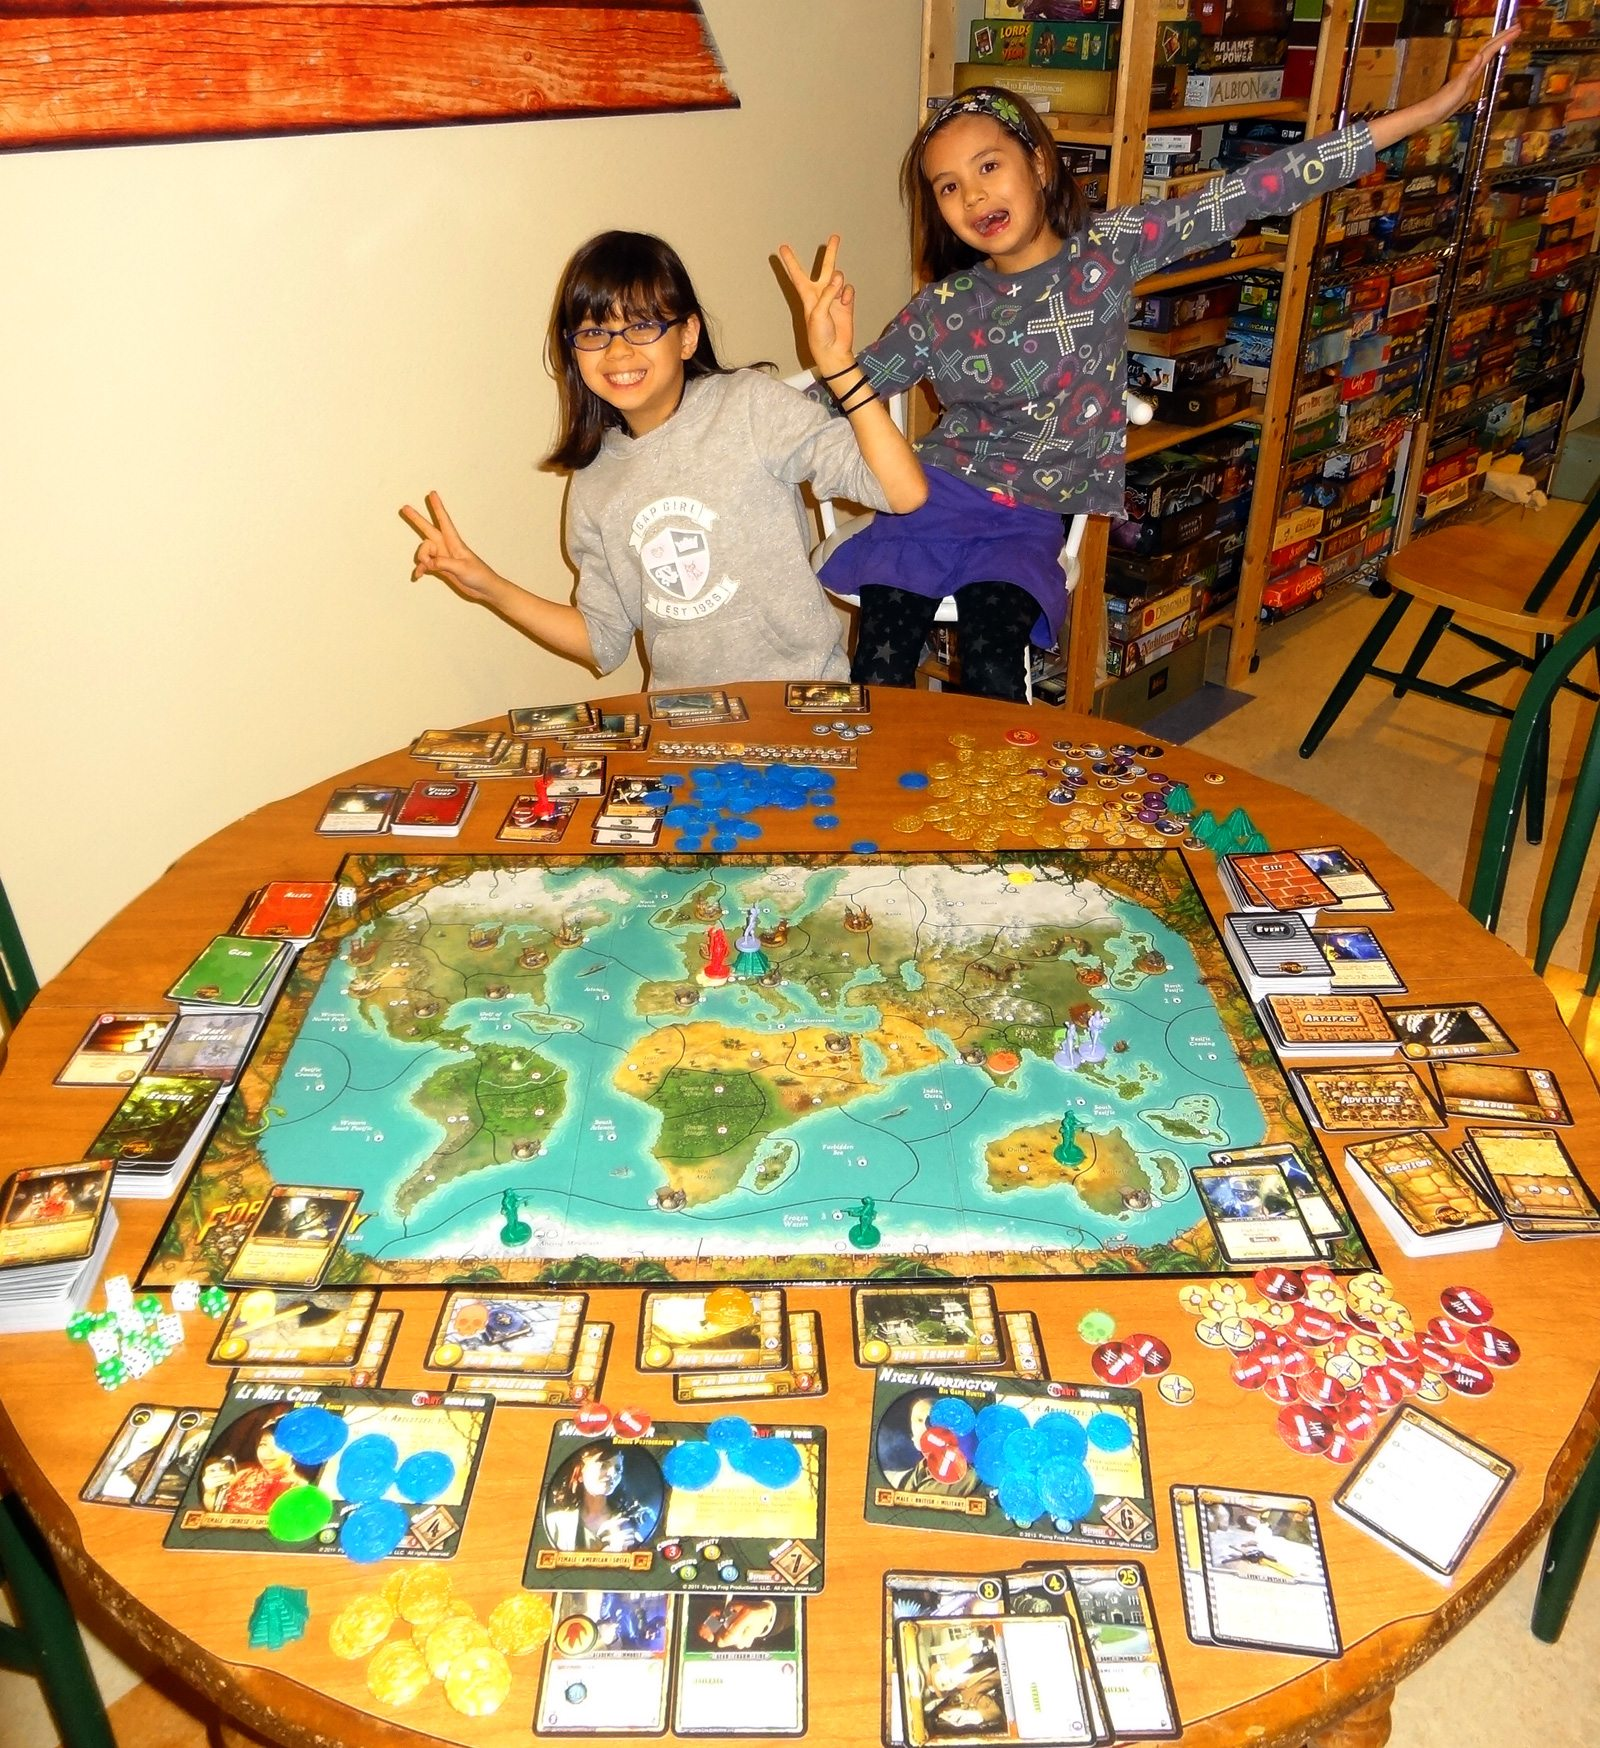 Games: Top 10 Reasons To Play Board Games With Your Kids